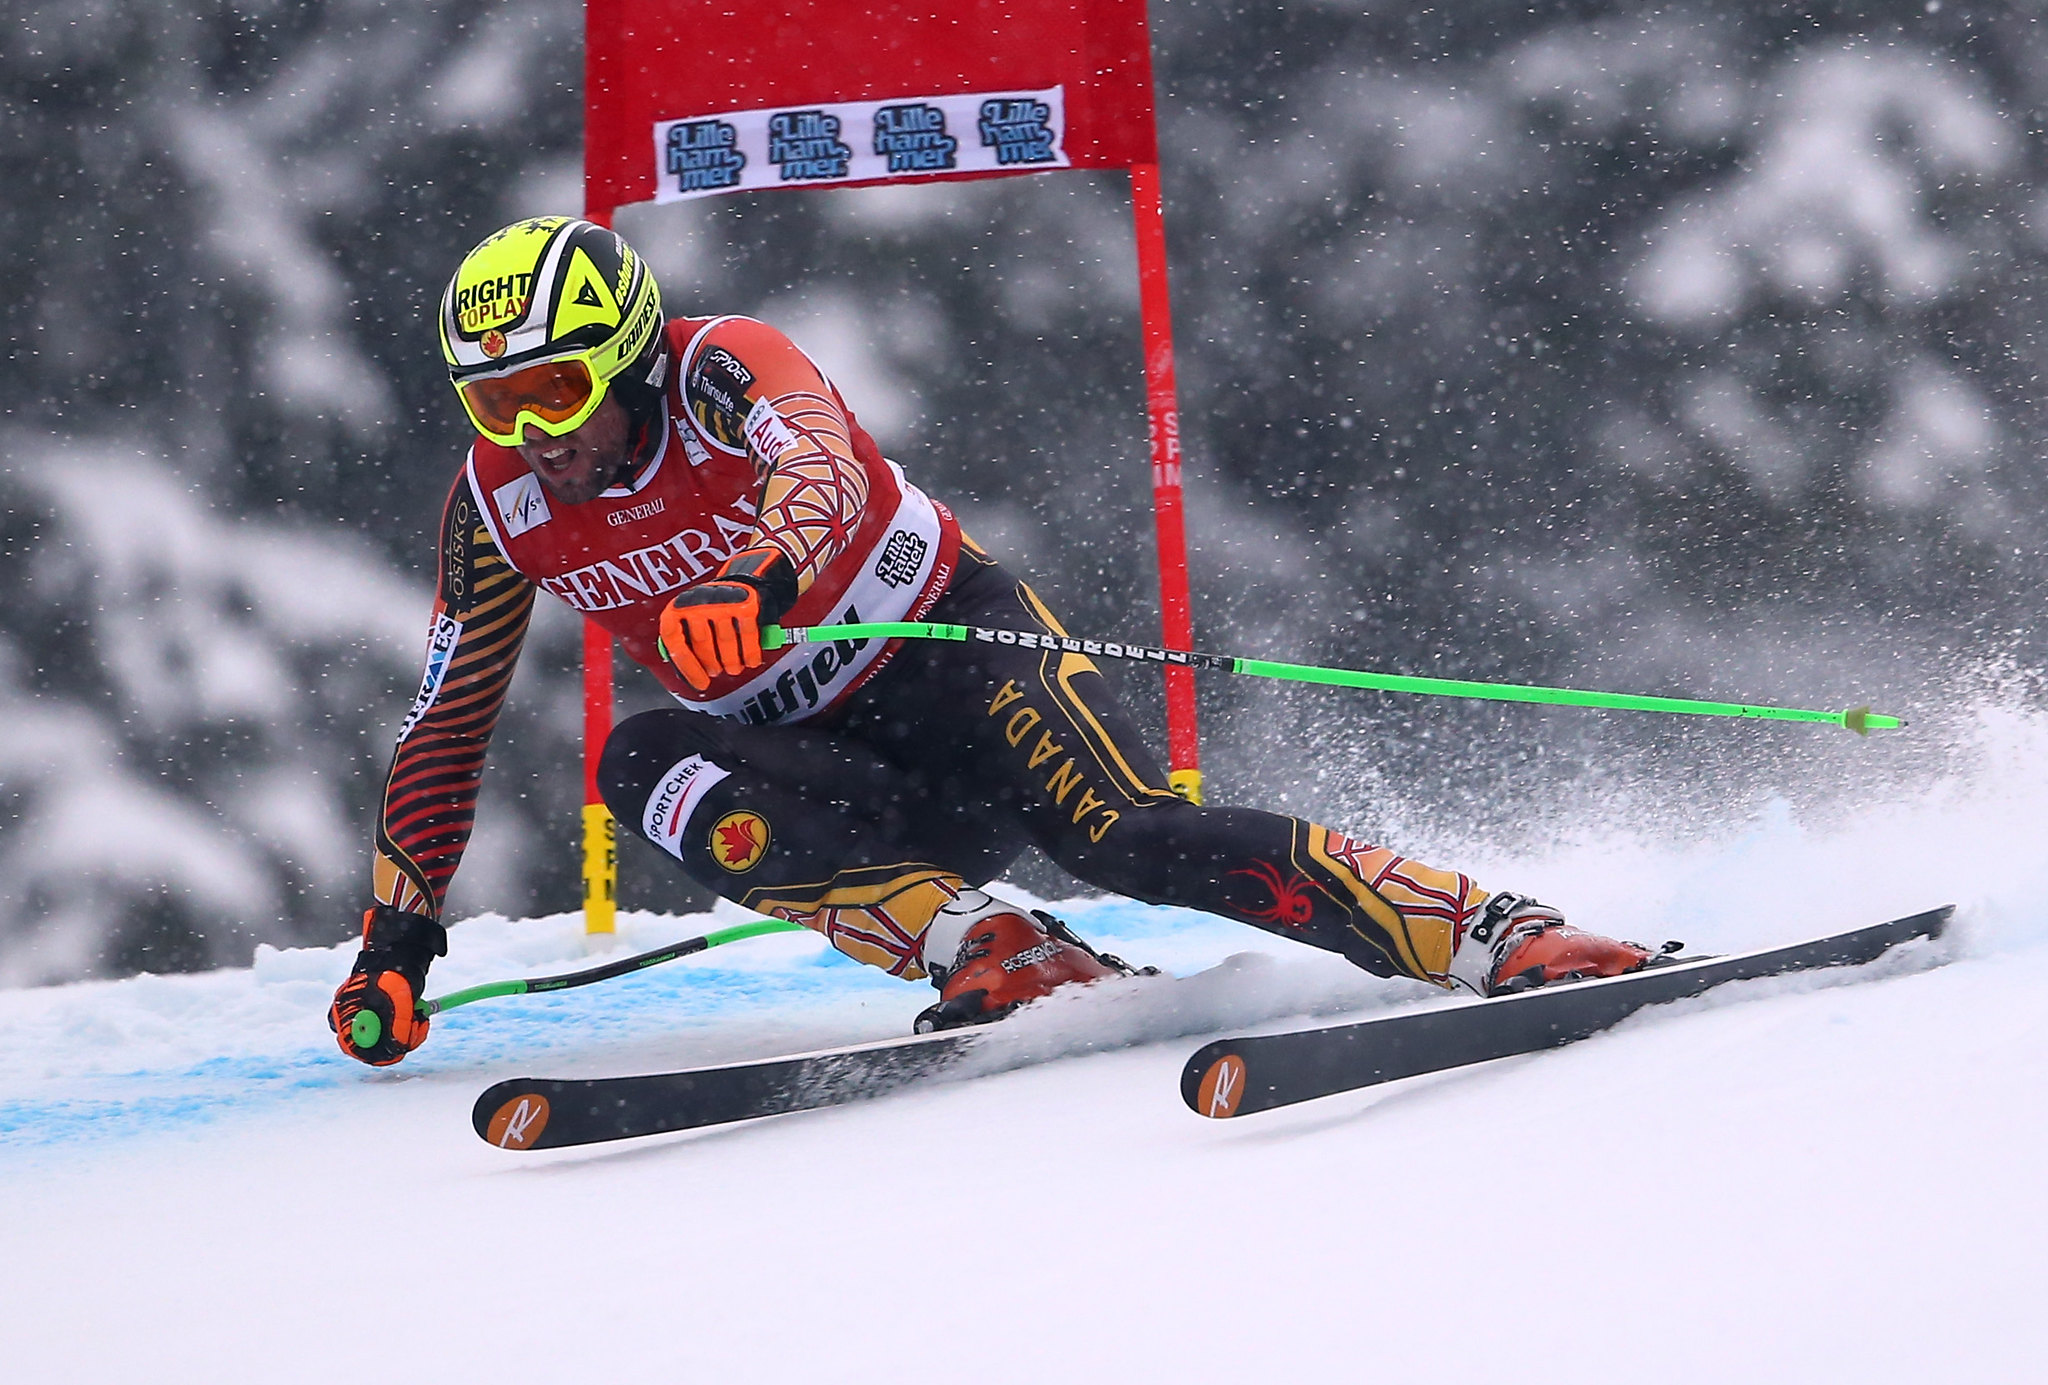 Manny rounds a gate during the Super-G in Kvitfjell, NOR